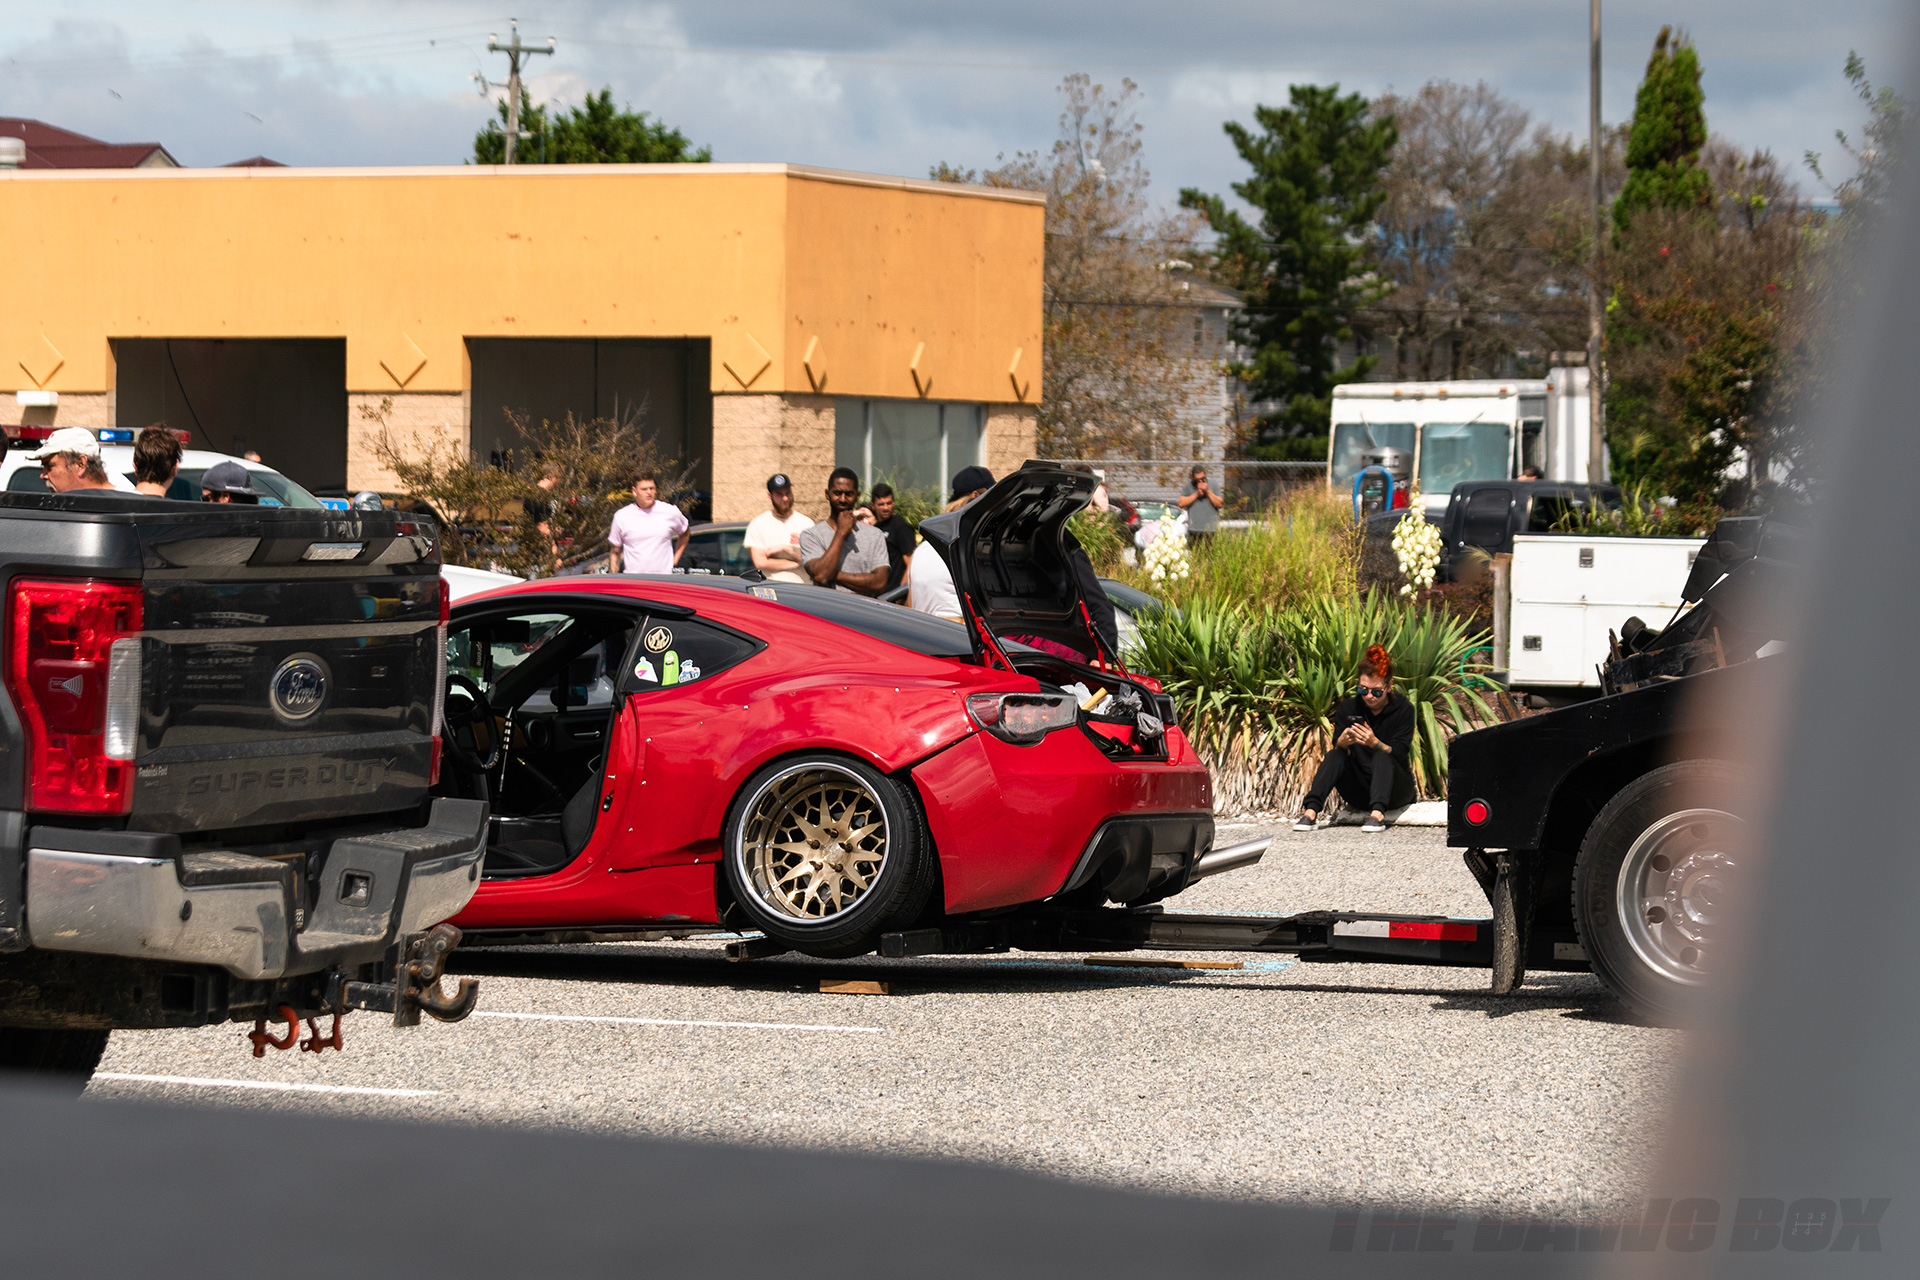 FRS towed away